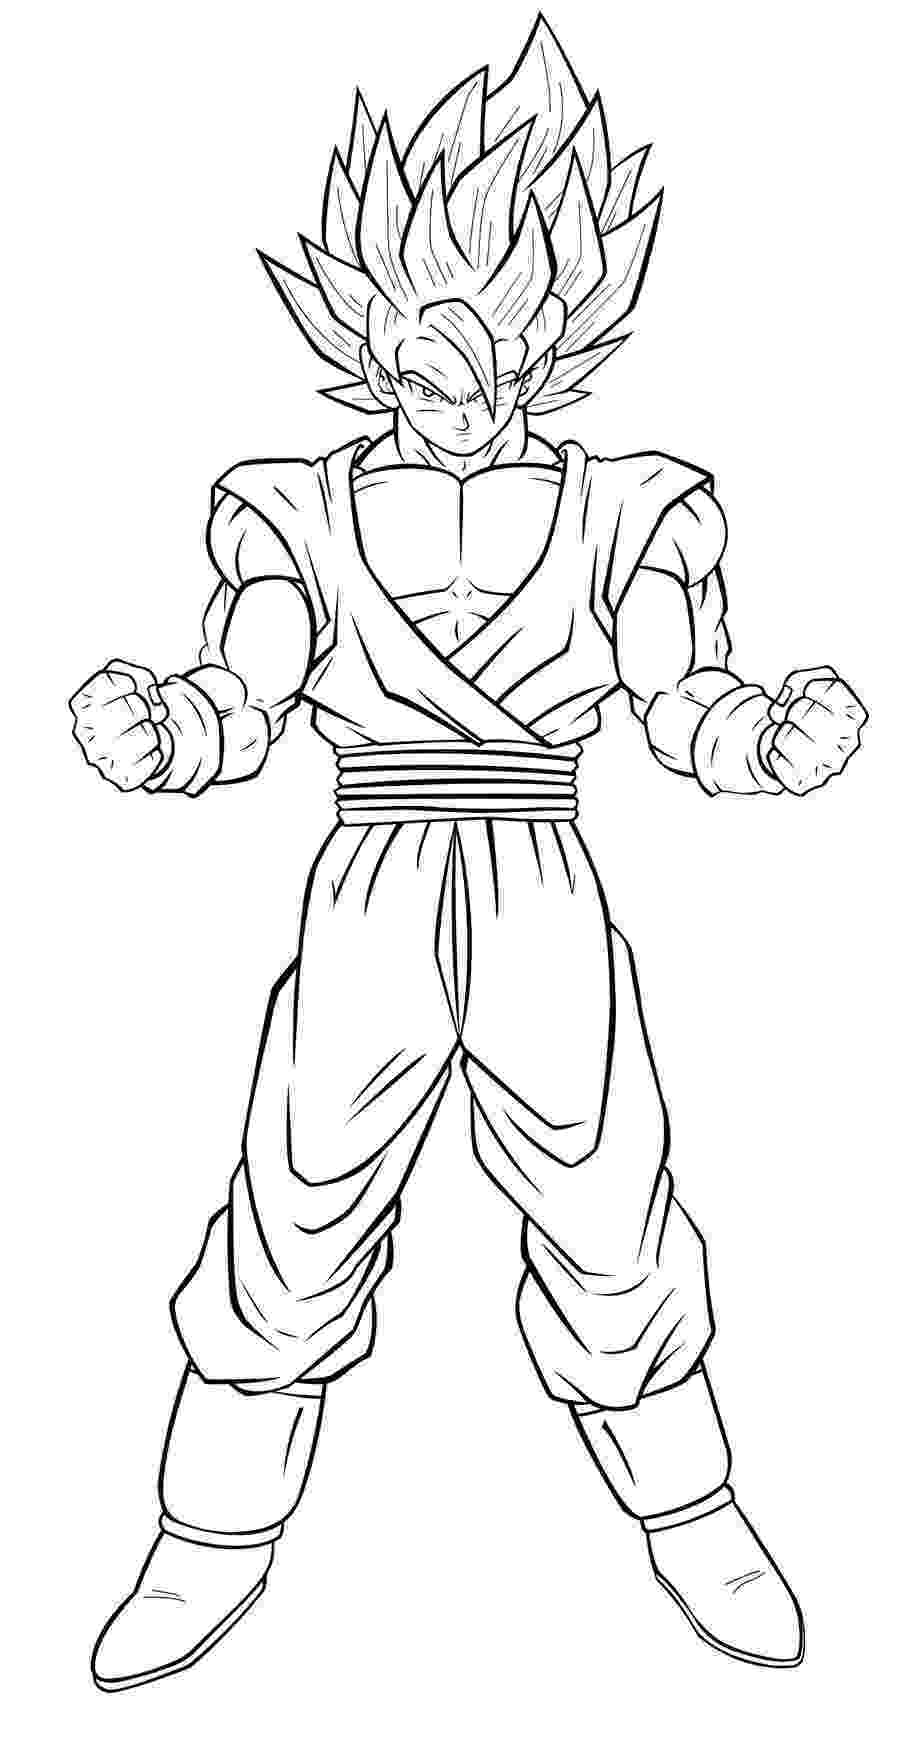 goku super saiyan coloring pages goku super saiyan 4 coloring pages images isaiah saiyan pages coloring goku super